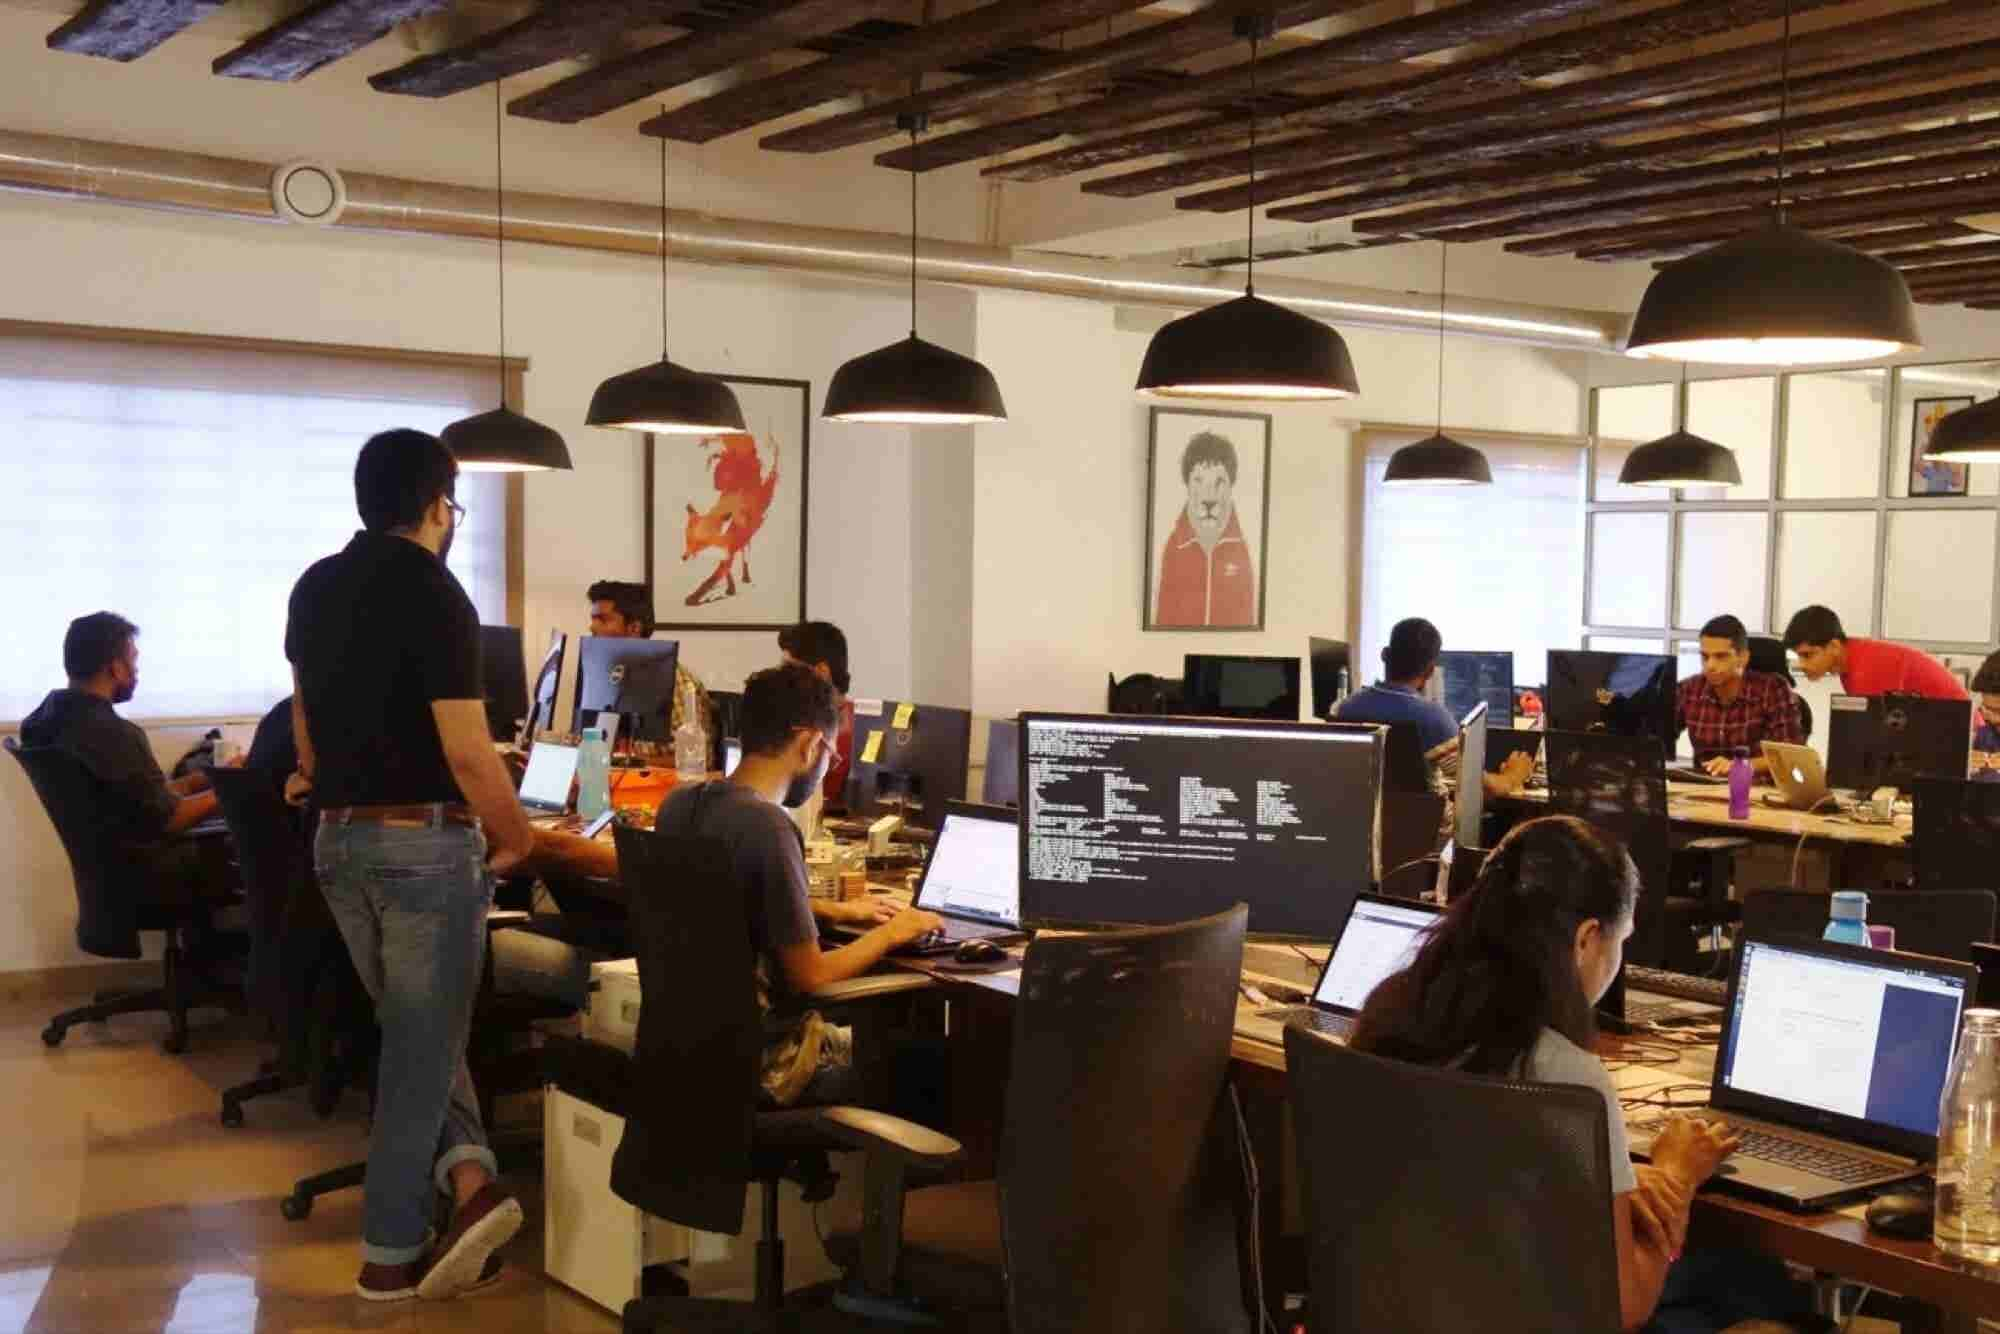 This Fintech Incubator Wants to Partner With Both Disruptors & Incumbents